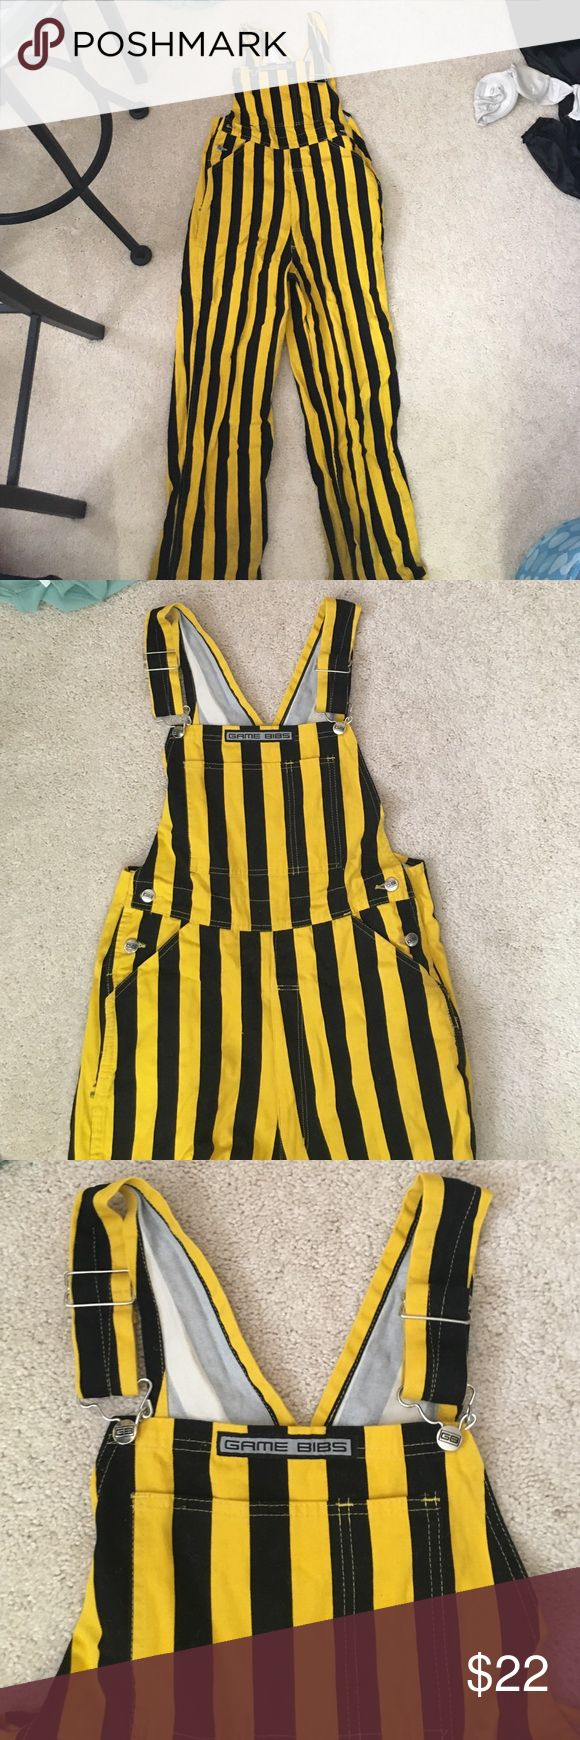 Iowa game bibs black and yellow overalls Iowa Hawkeyes fan? Size S/M Game Bib pant overalls! Worn at the bottom because it isn't a tailgate w out a lot of mud! Discount reflects that. Other